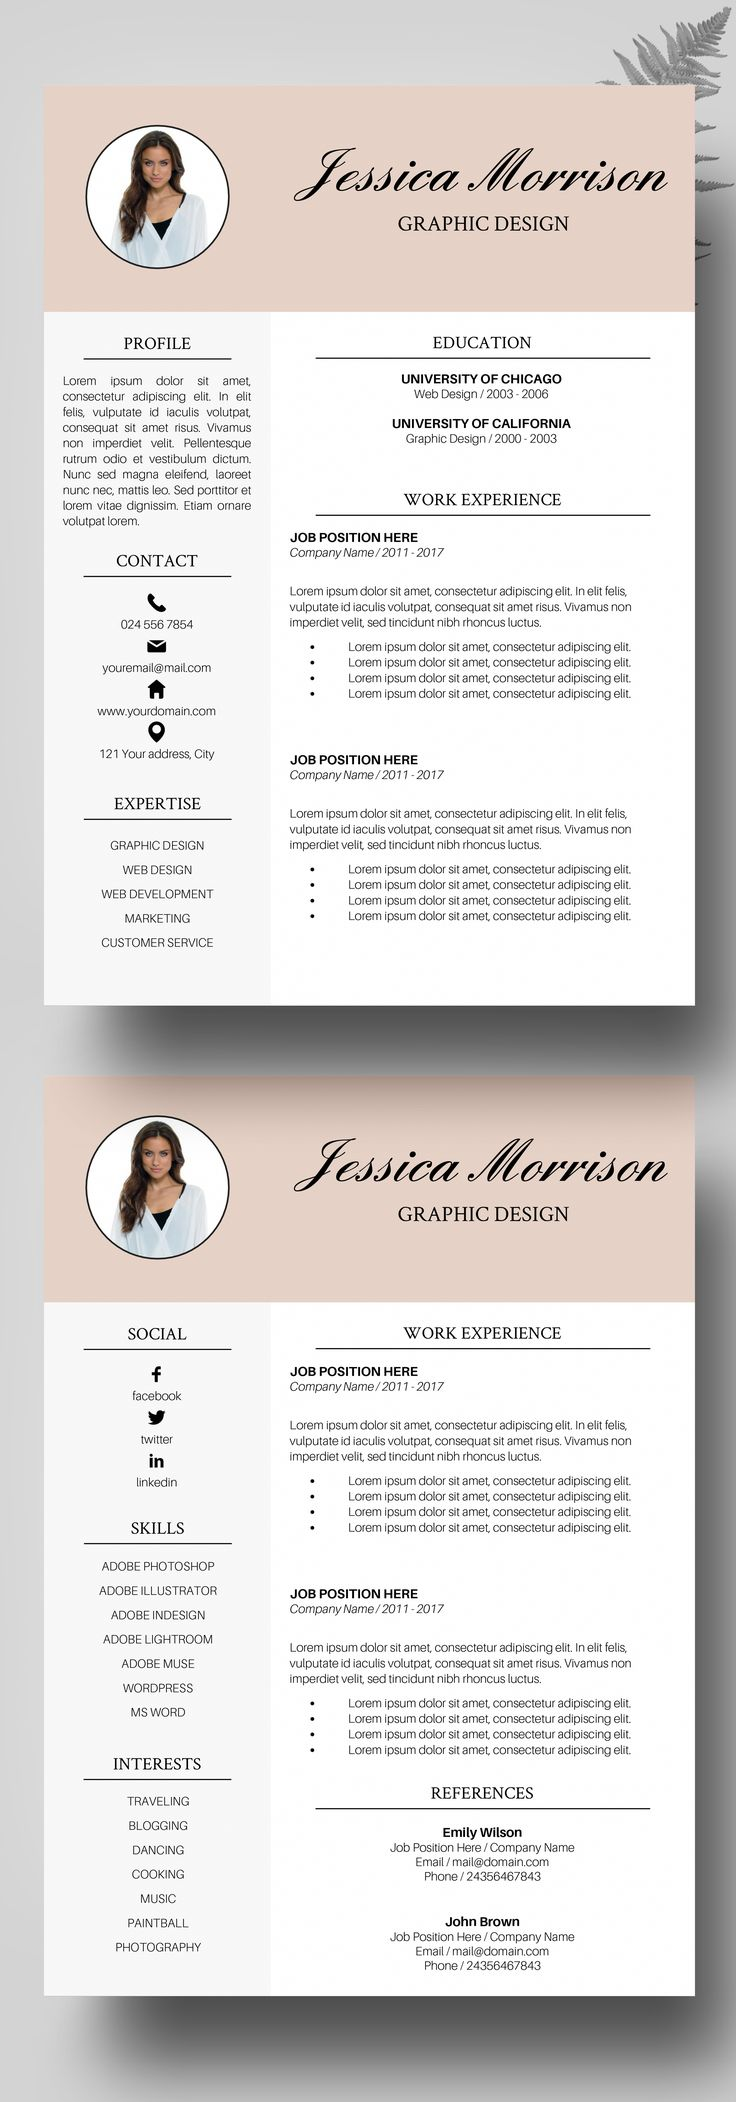 Best Resume Templates  Off Special Offer Images On